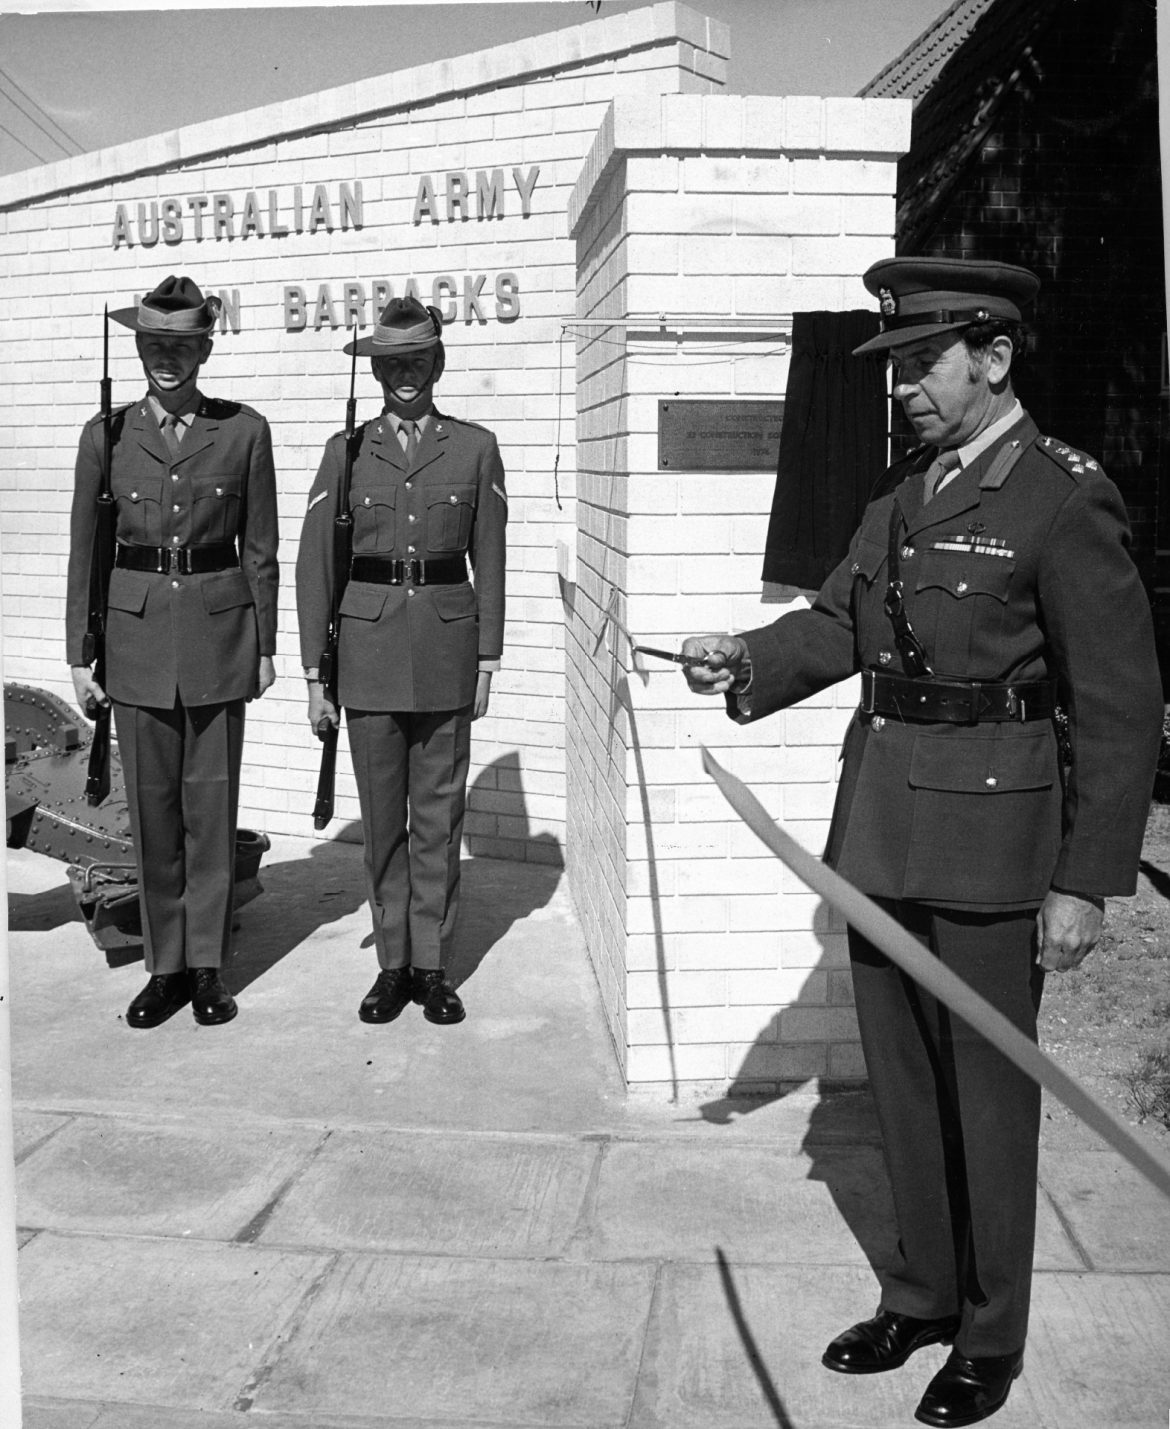 1974-Opening-of-Irwin-Barracks-gates-built-by-22-Const-Sqn-1.jpg